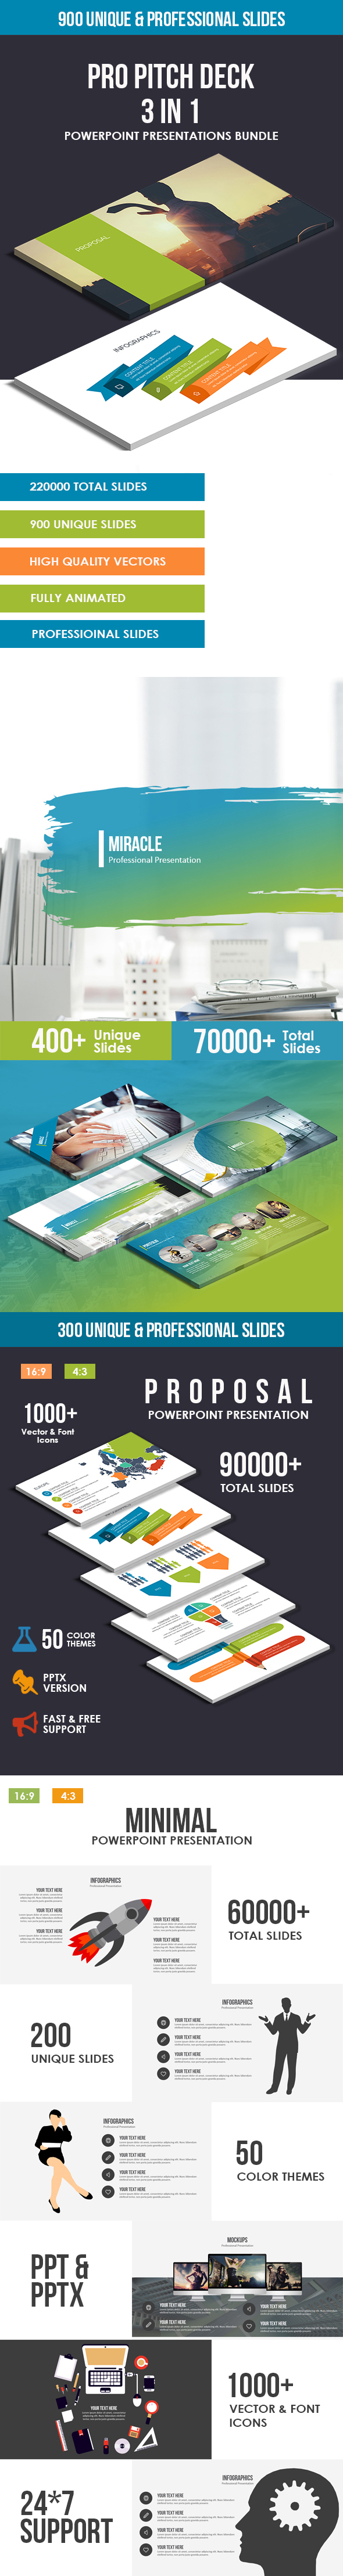 Pro Pitch Deck Powerpoint Bundle - Business PowerPoint Templates